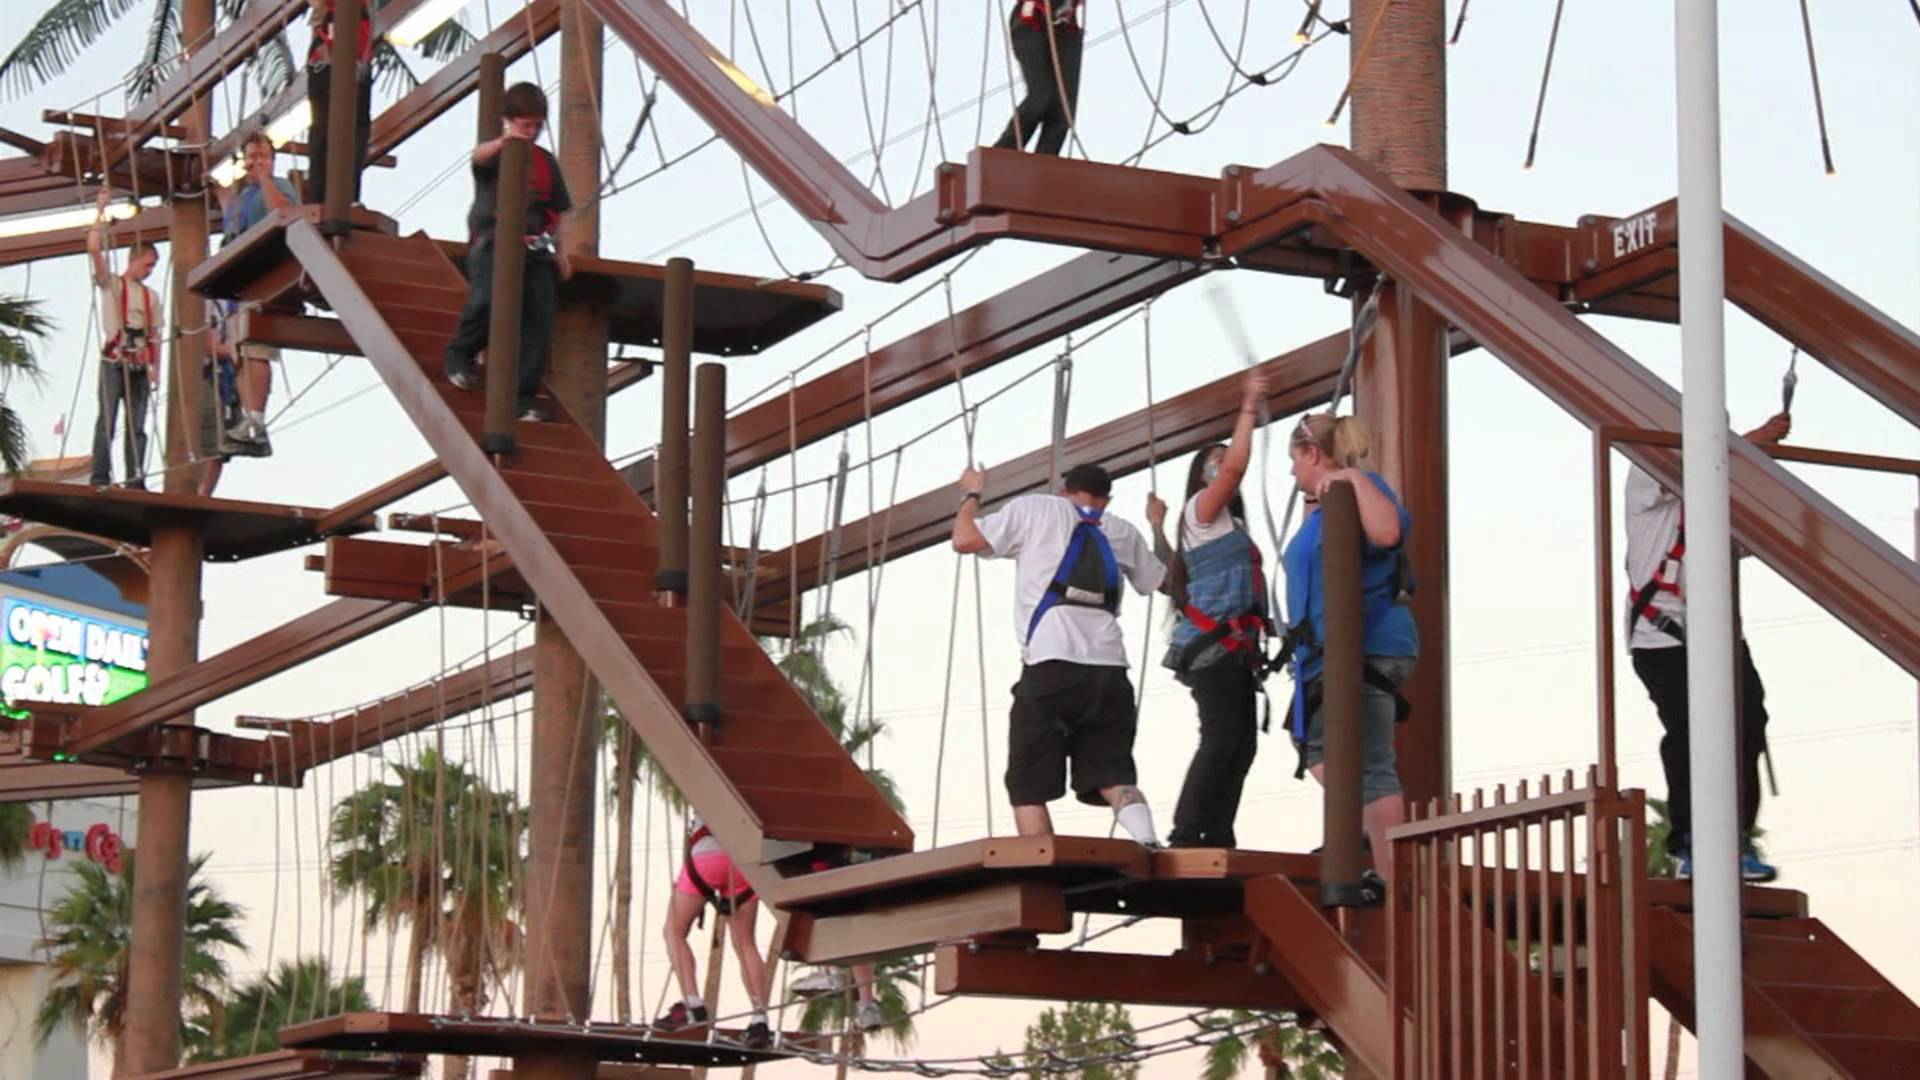 3 people on the ropes challenge